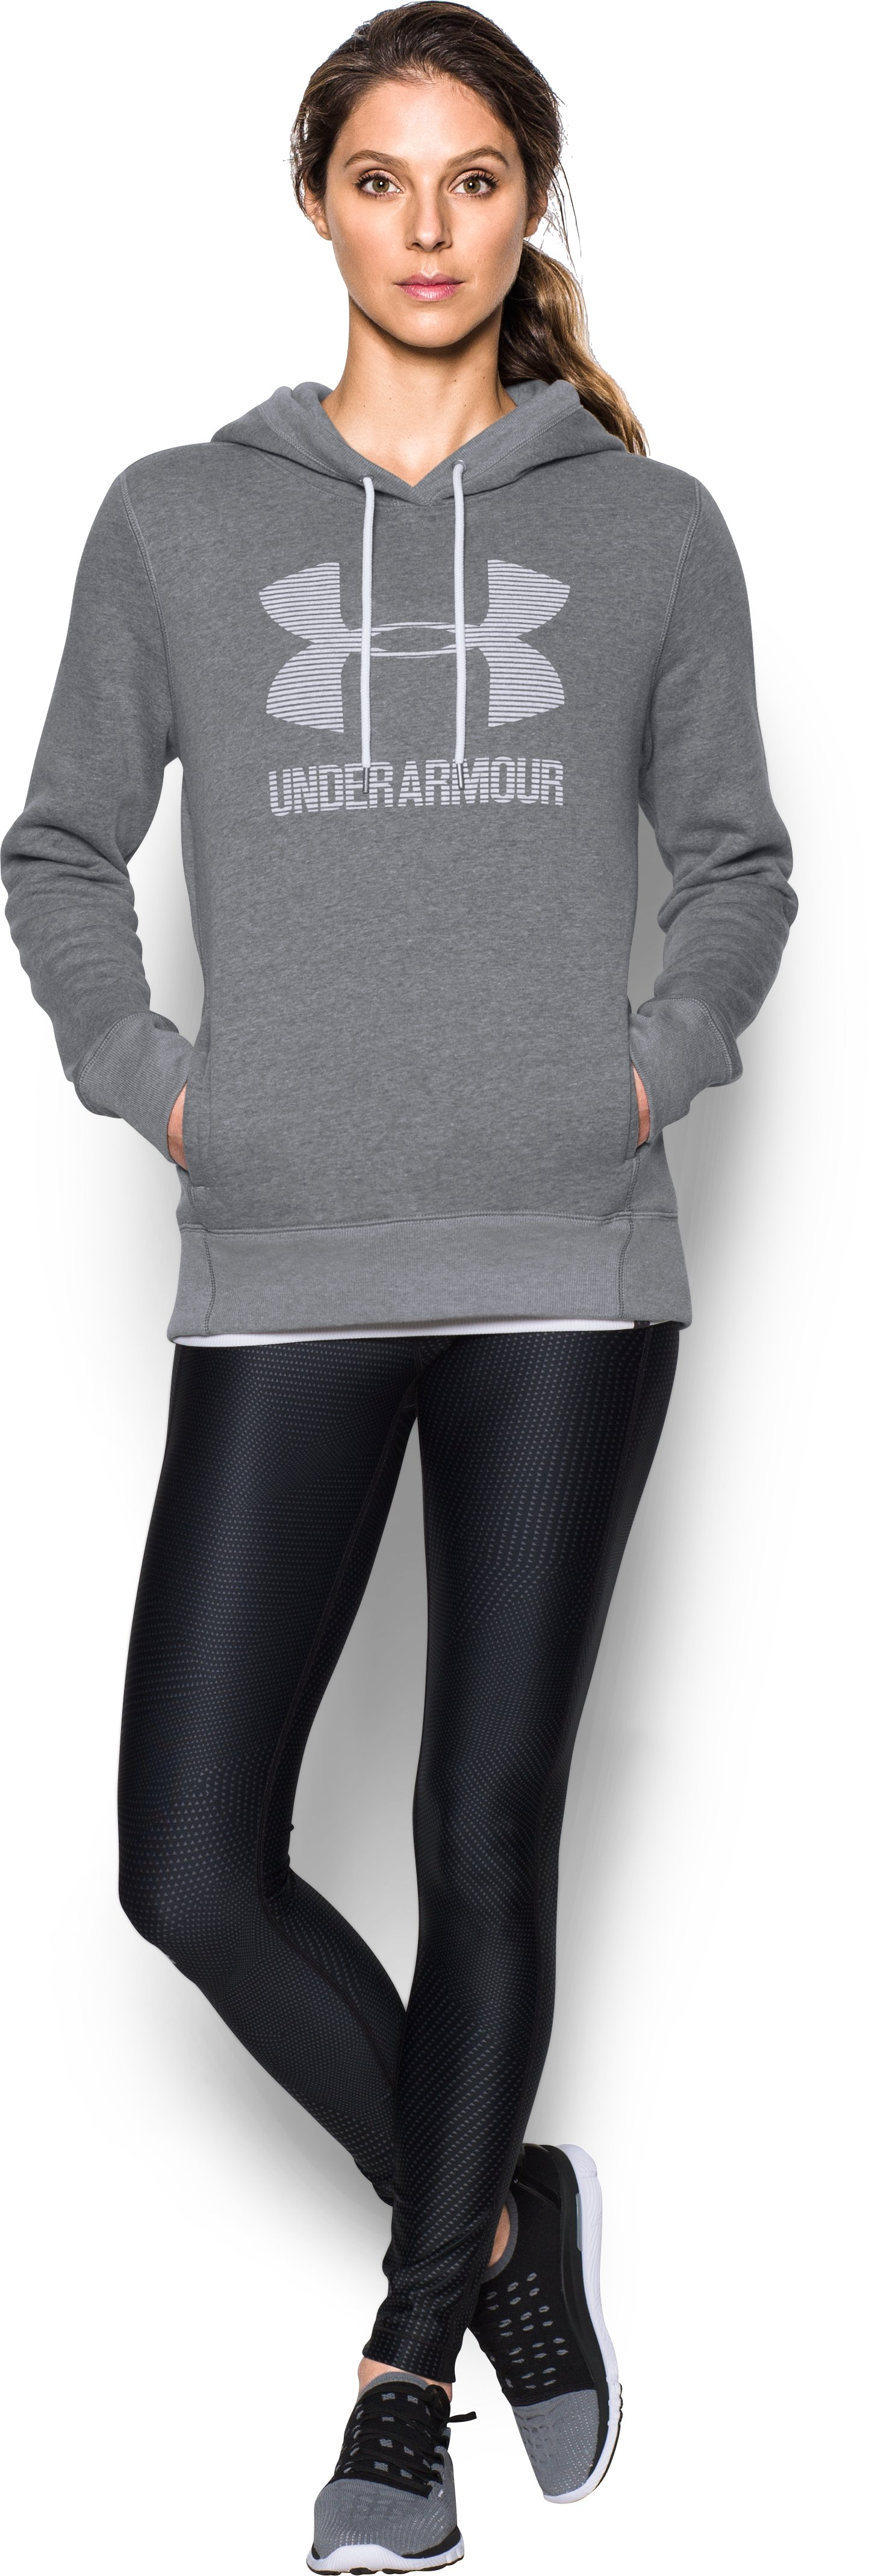 Women's UA Favorite Fleece Sportstyle Hoodie, GRAPHITE LIGHT HEATHER, Front